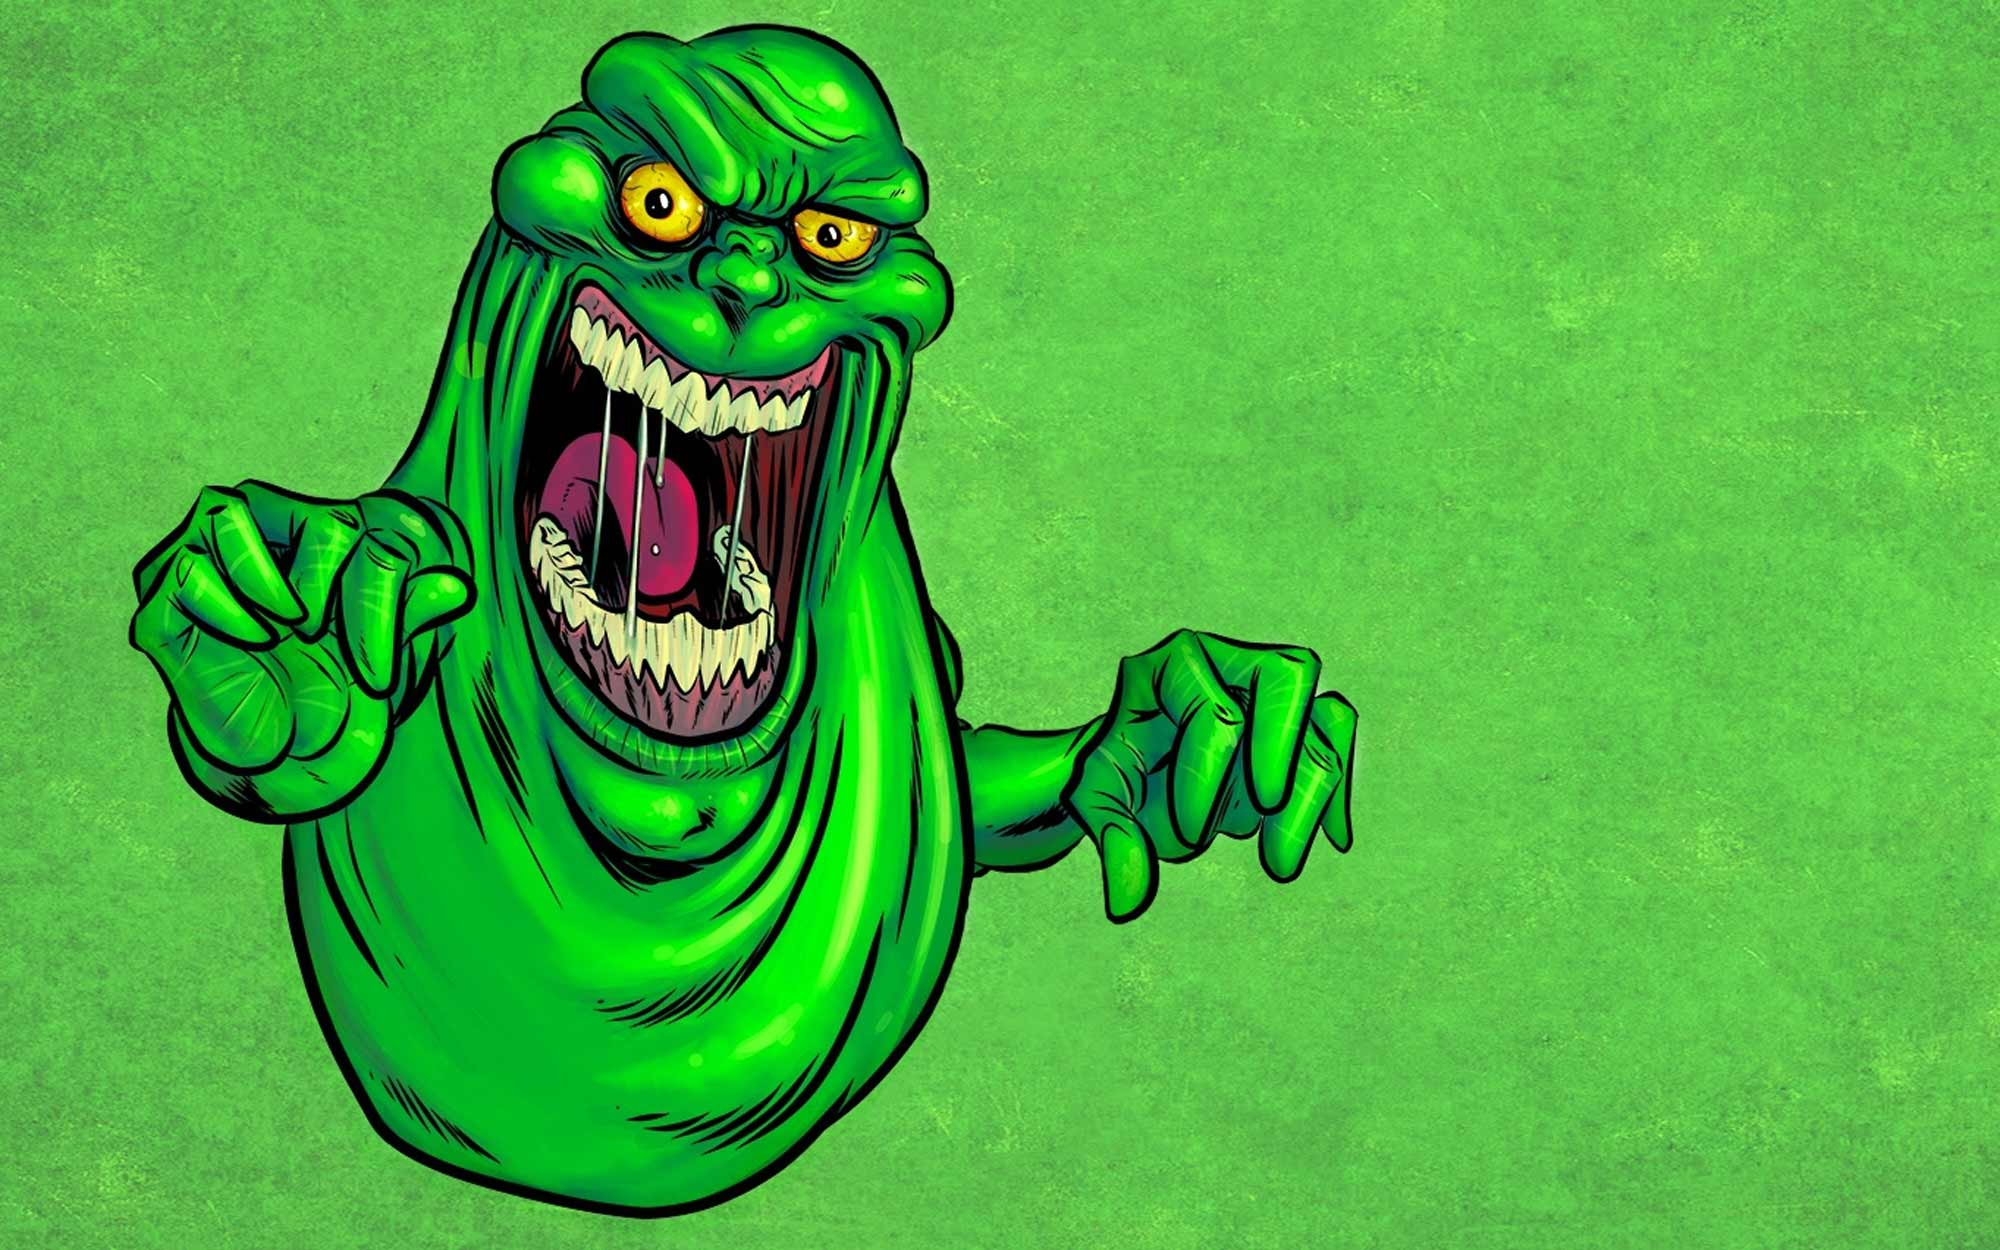 2000x1250 Ghostbusters Is Back With Slimer, The Second Of Three Silver Coins